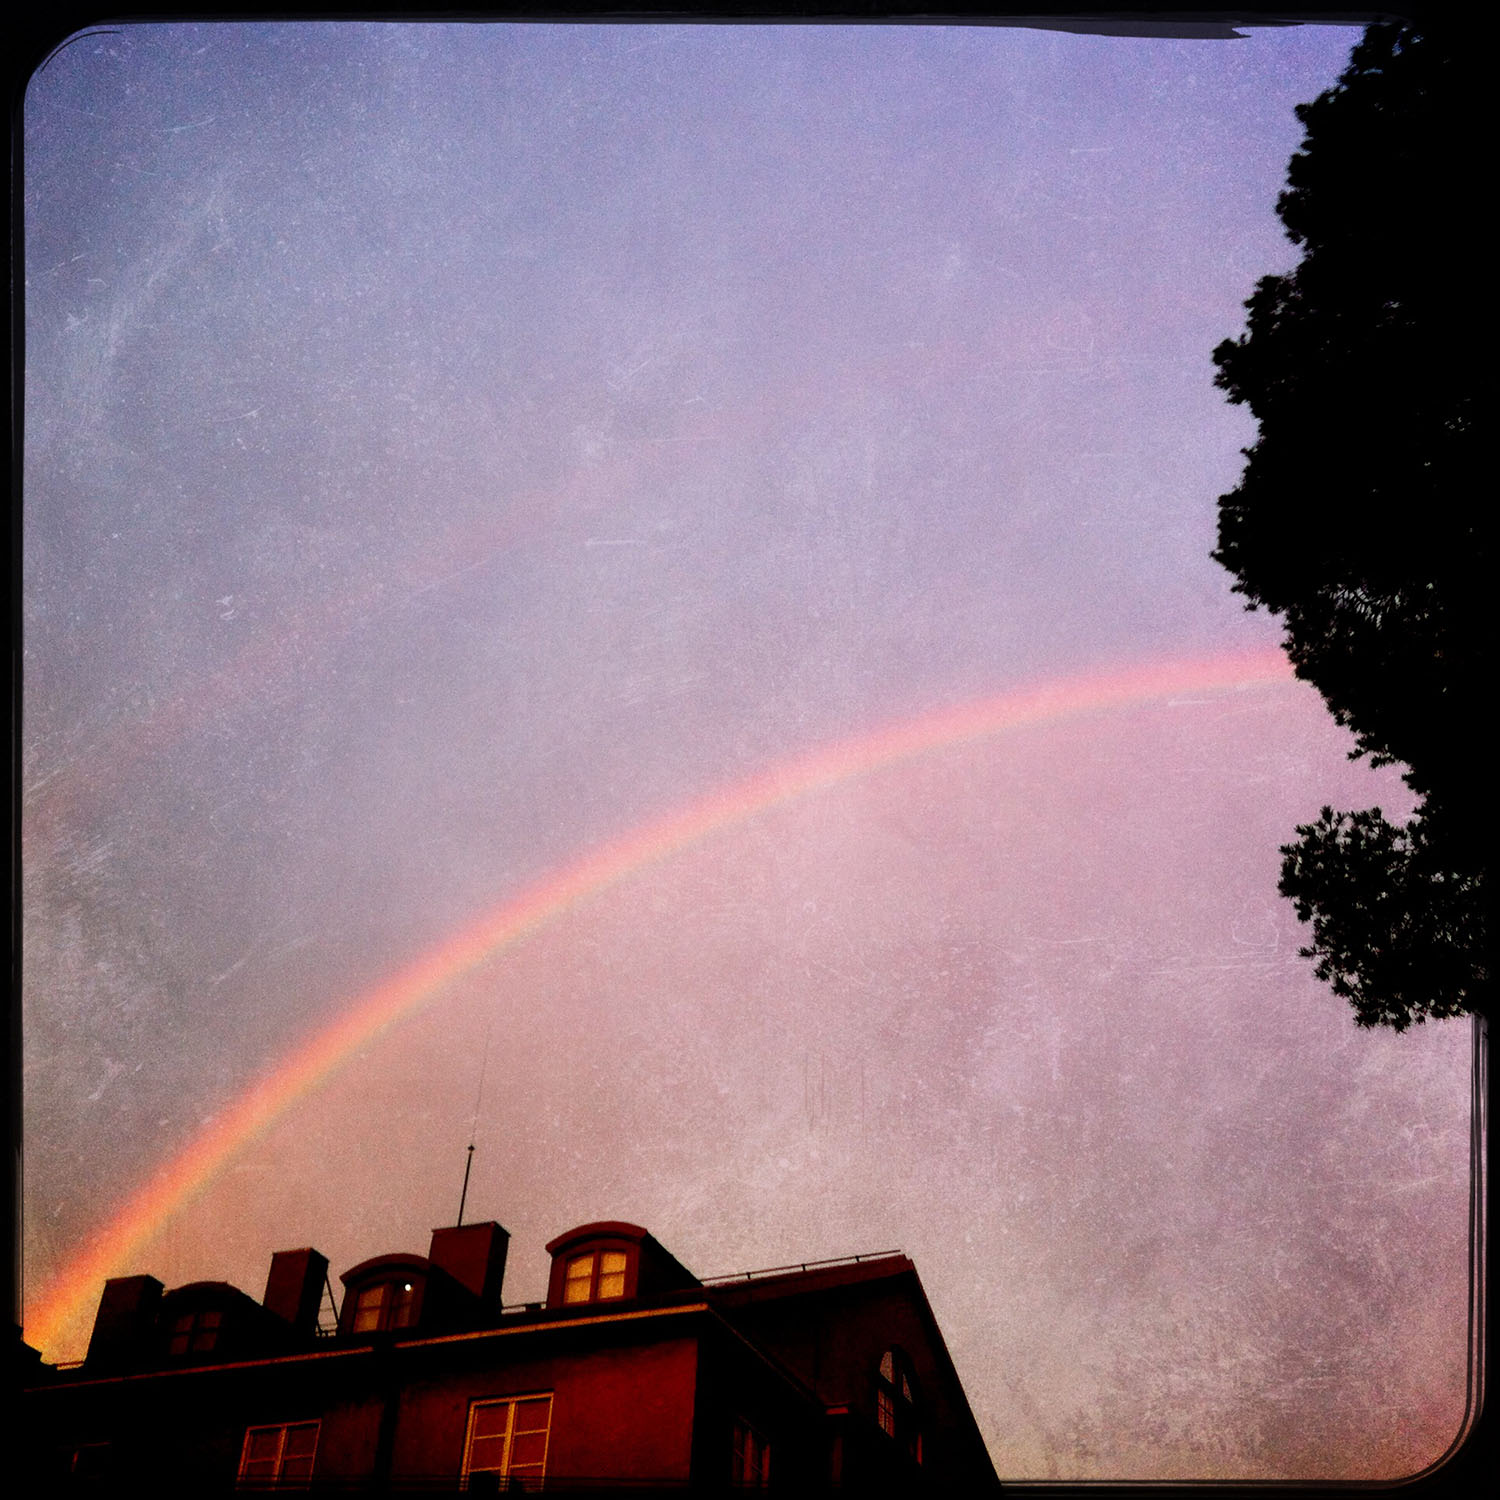 Double Rainbow. iPhoneography by Kate England